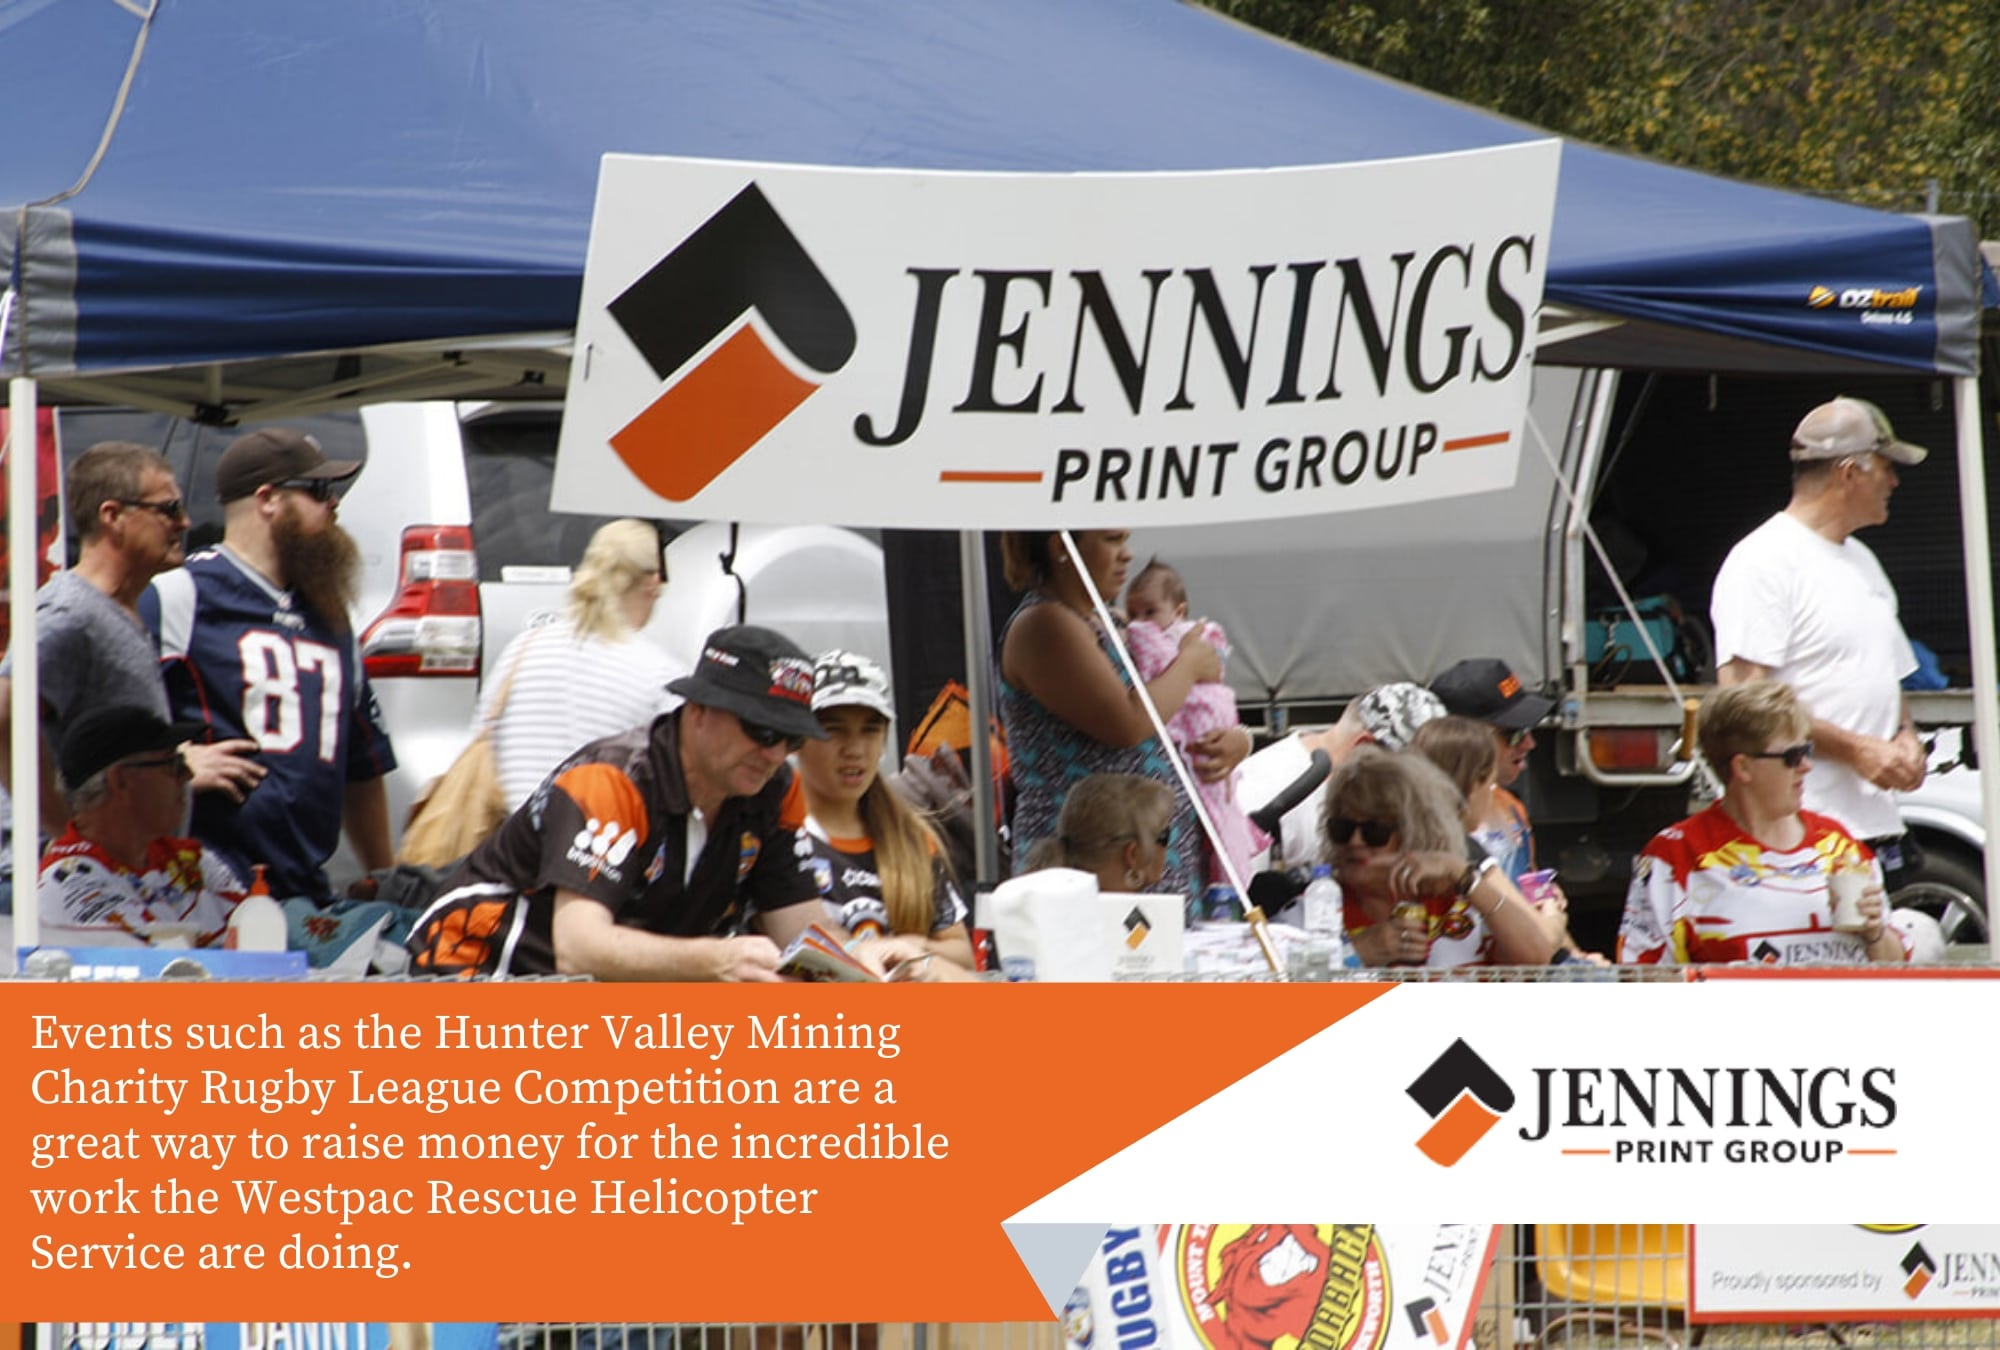 Hunter Valley Mining Charity Rugby League Competition - Mining Charity Rugby League